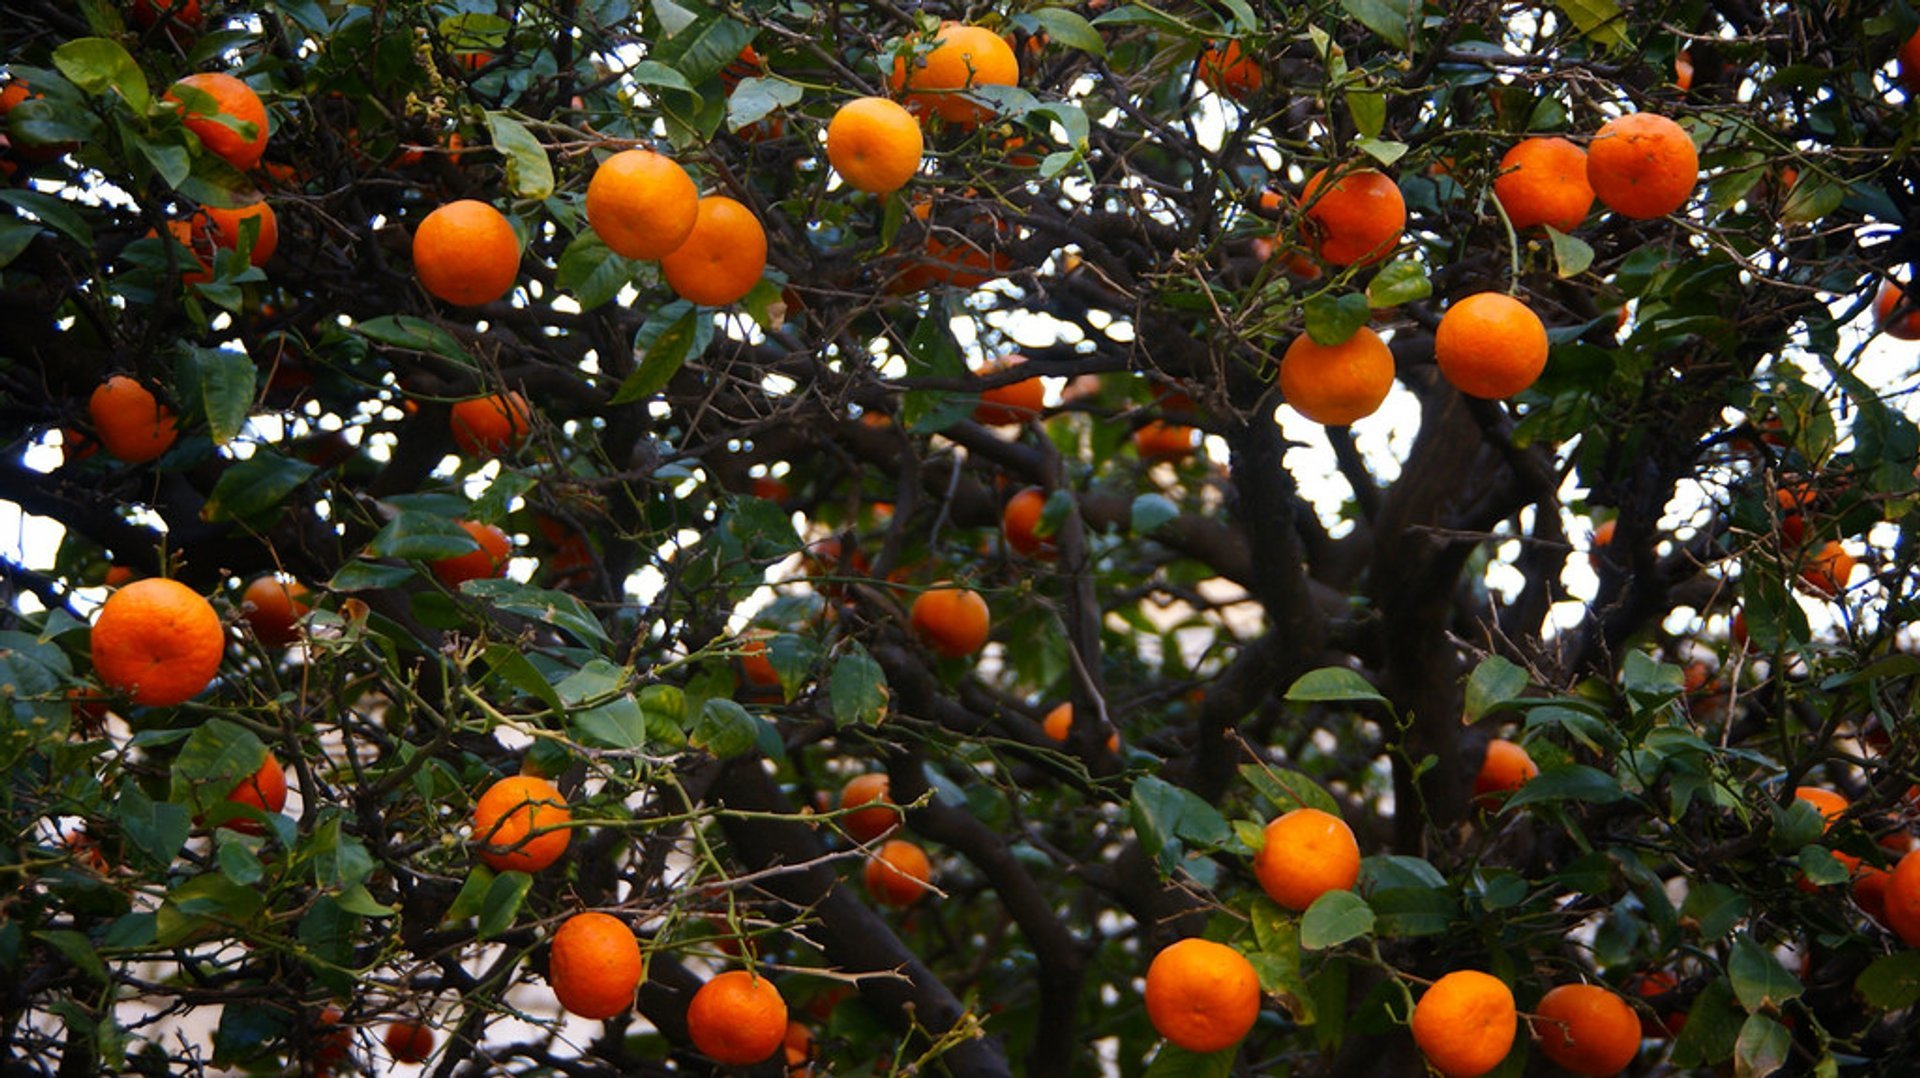 Tangerine Harvesting Season in Croatia - Best Season